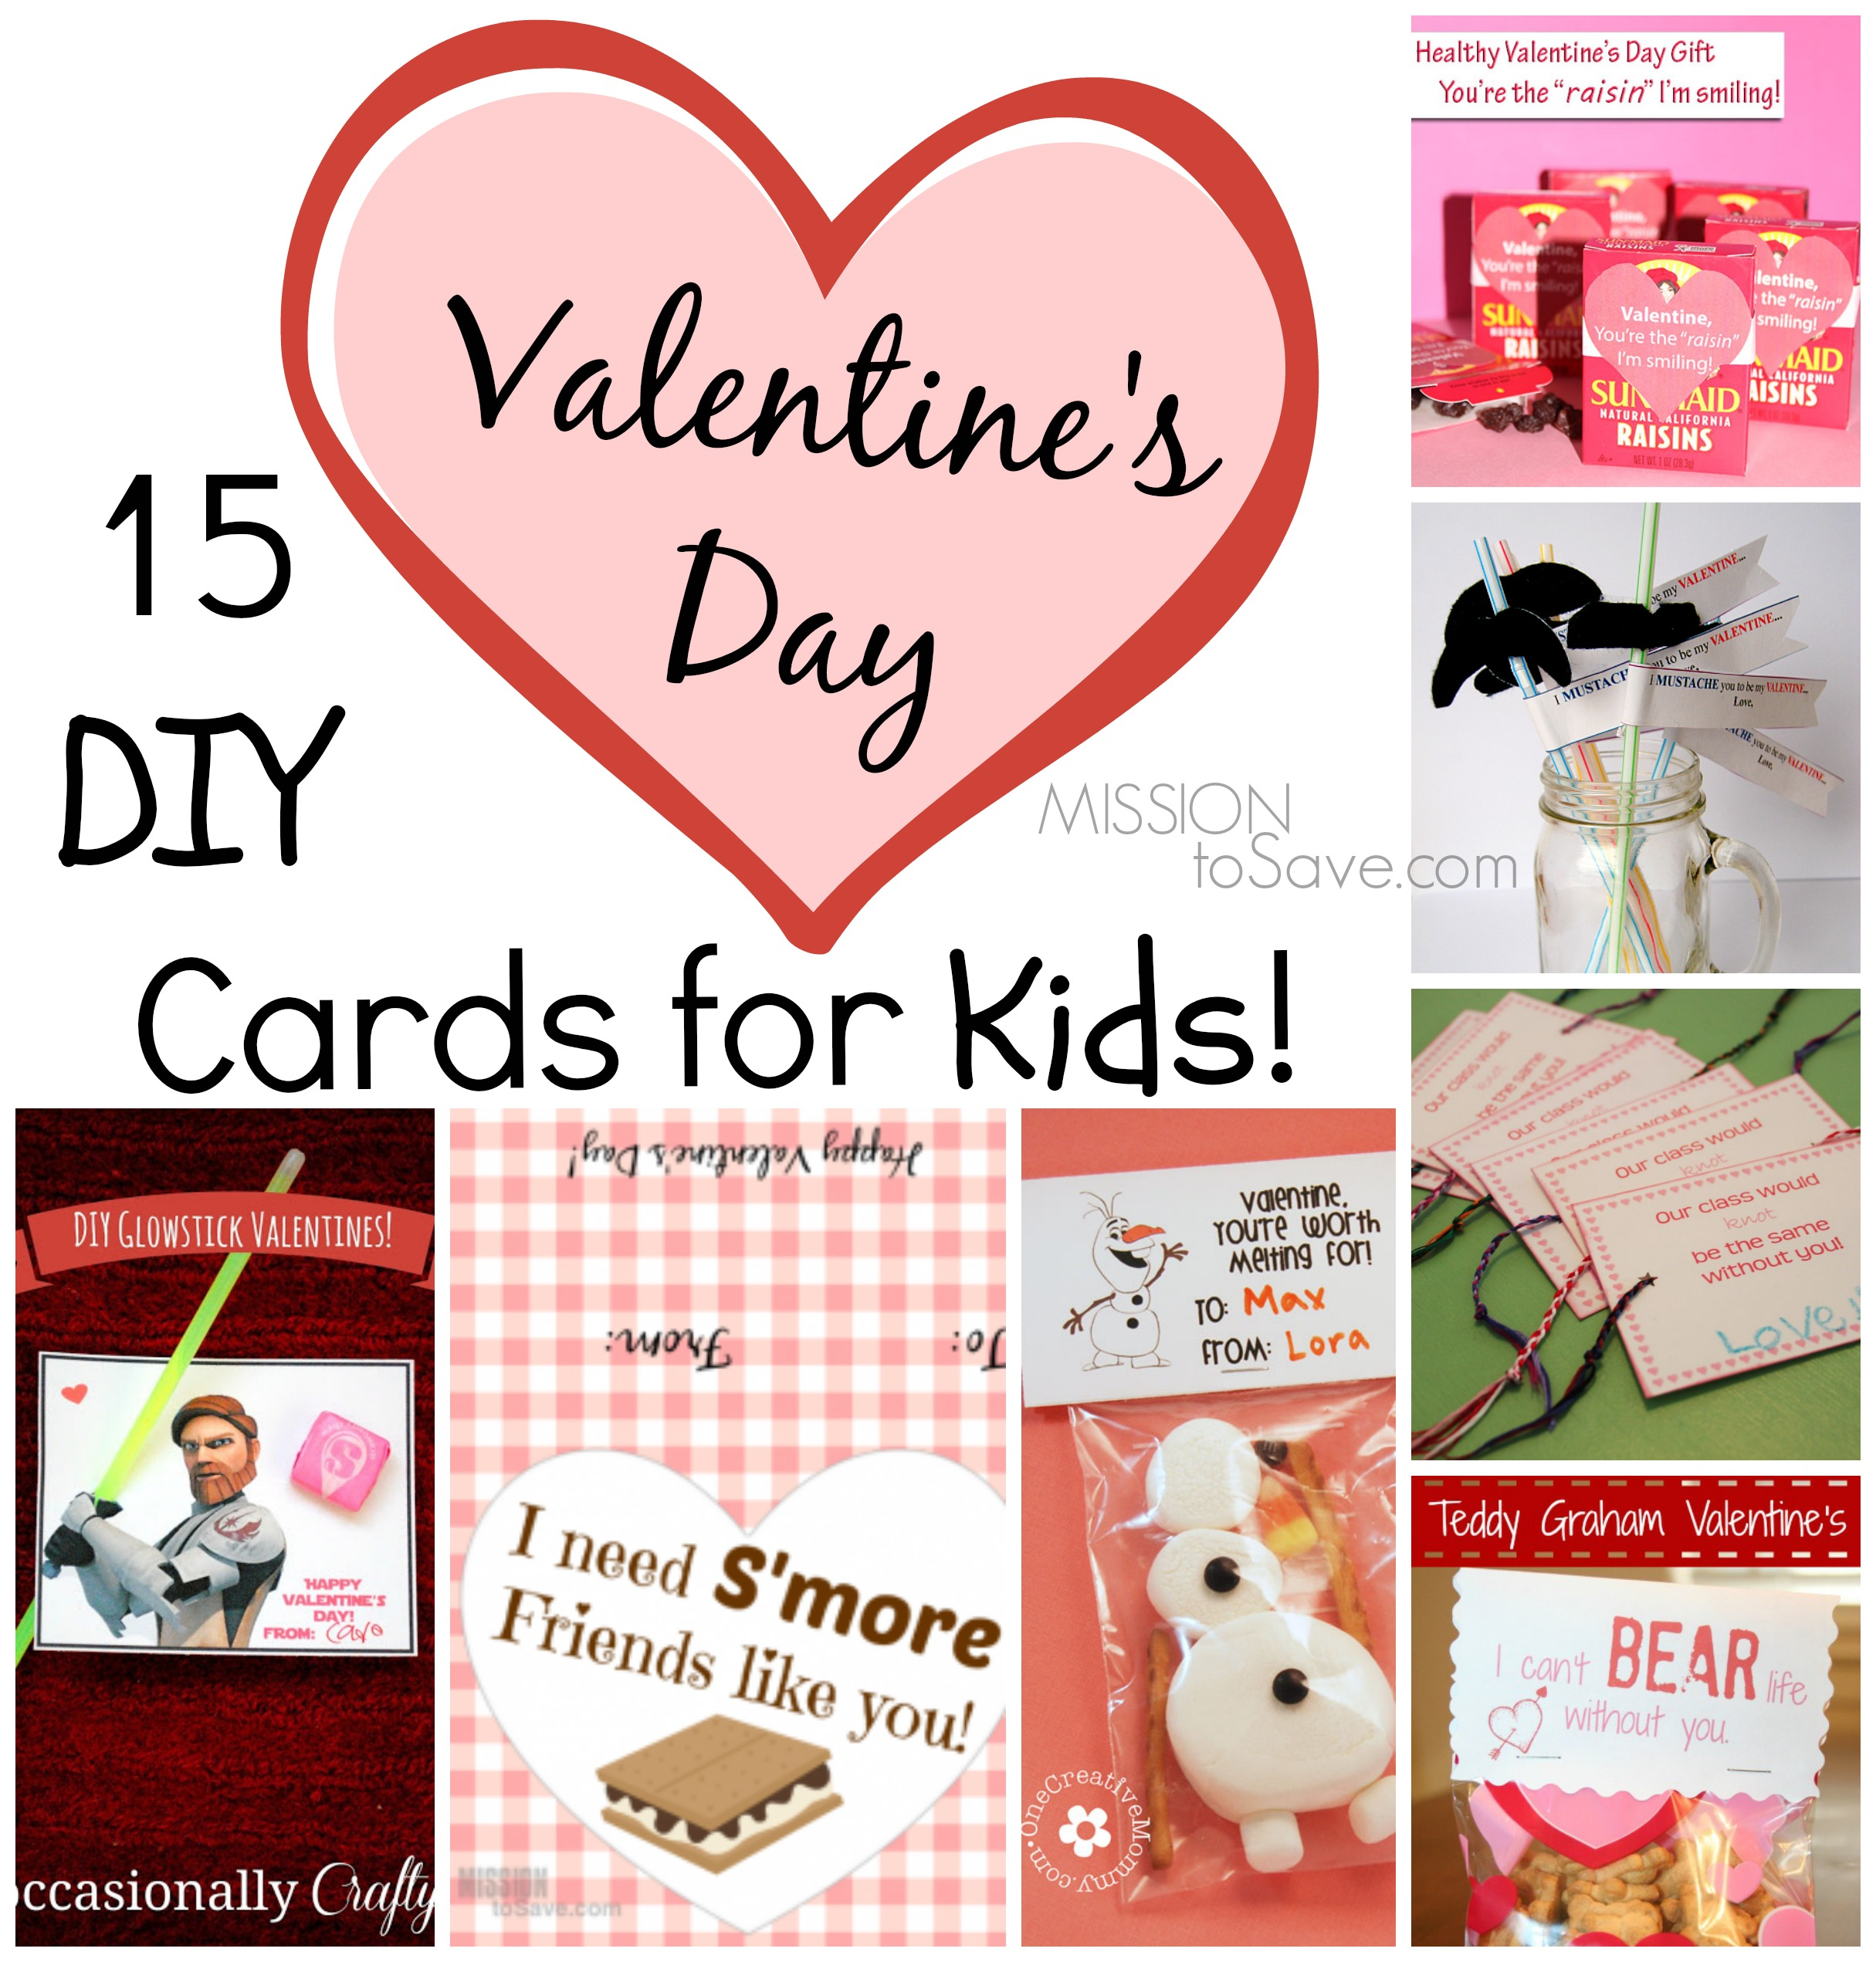 15 diy valentine day cards for kids - mission: to save, Ideas